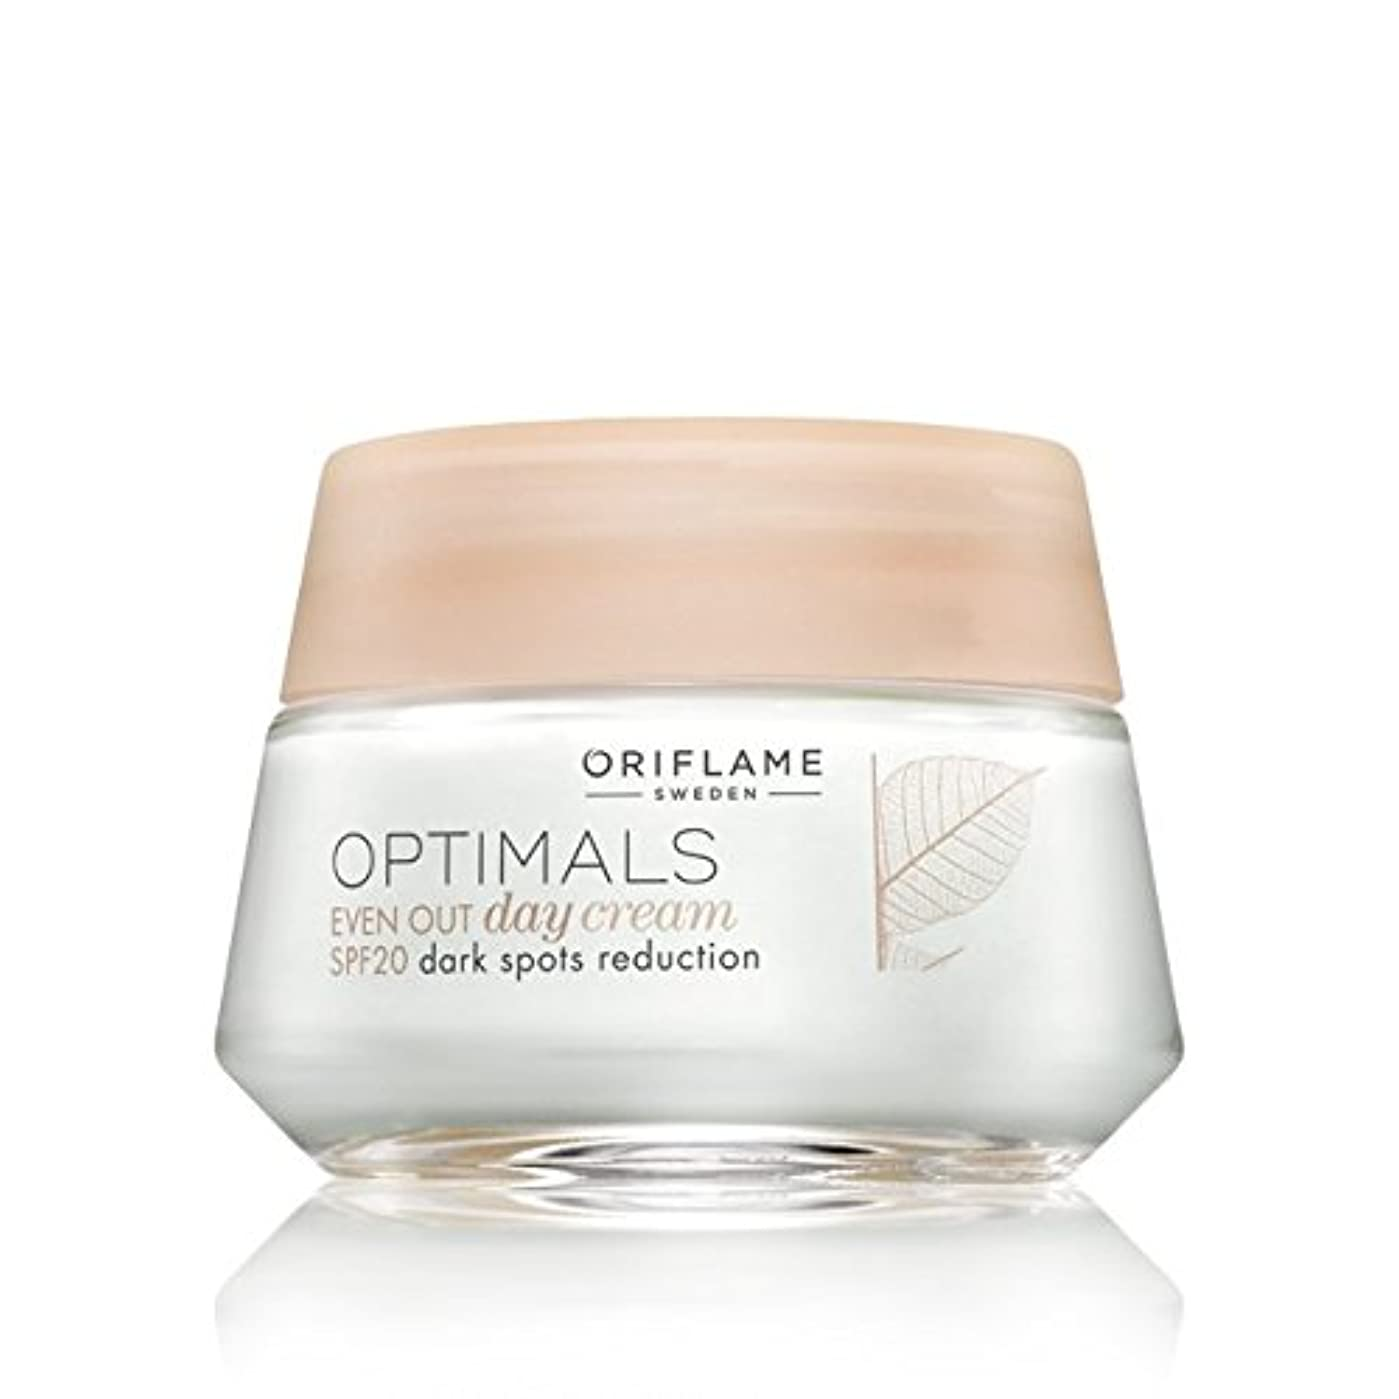 成熟したひばり謎めいたOriflame Optimals SPF 20 Dark Spot Reduction Even Out Day Cream, 50ml